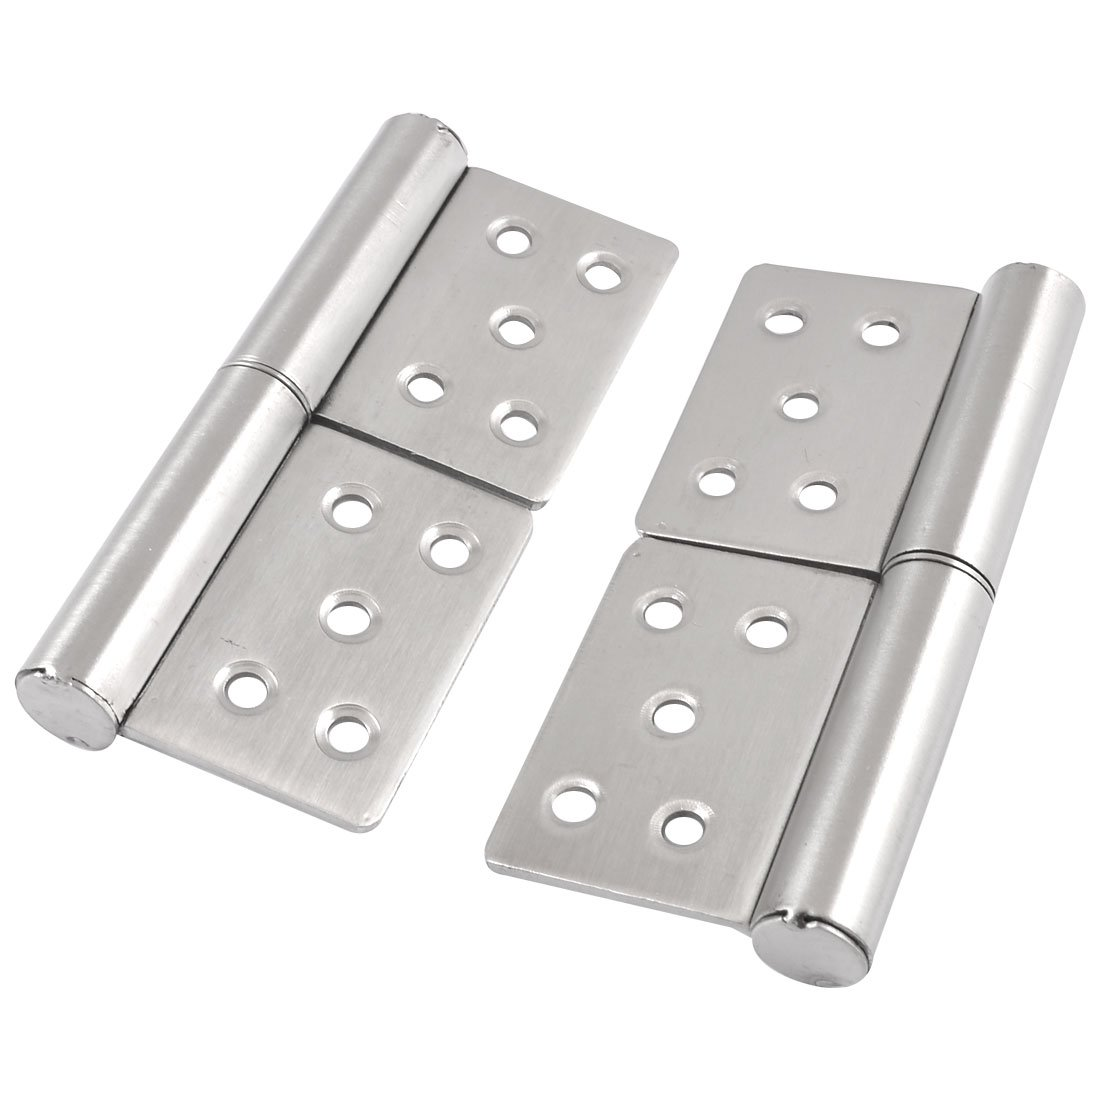 5'' Silver Tone Metal 360 Degree Rotating Cabinet Door Flag Hinge 2 Pieces by uxcell